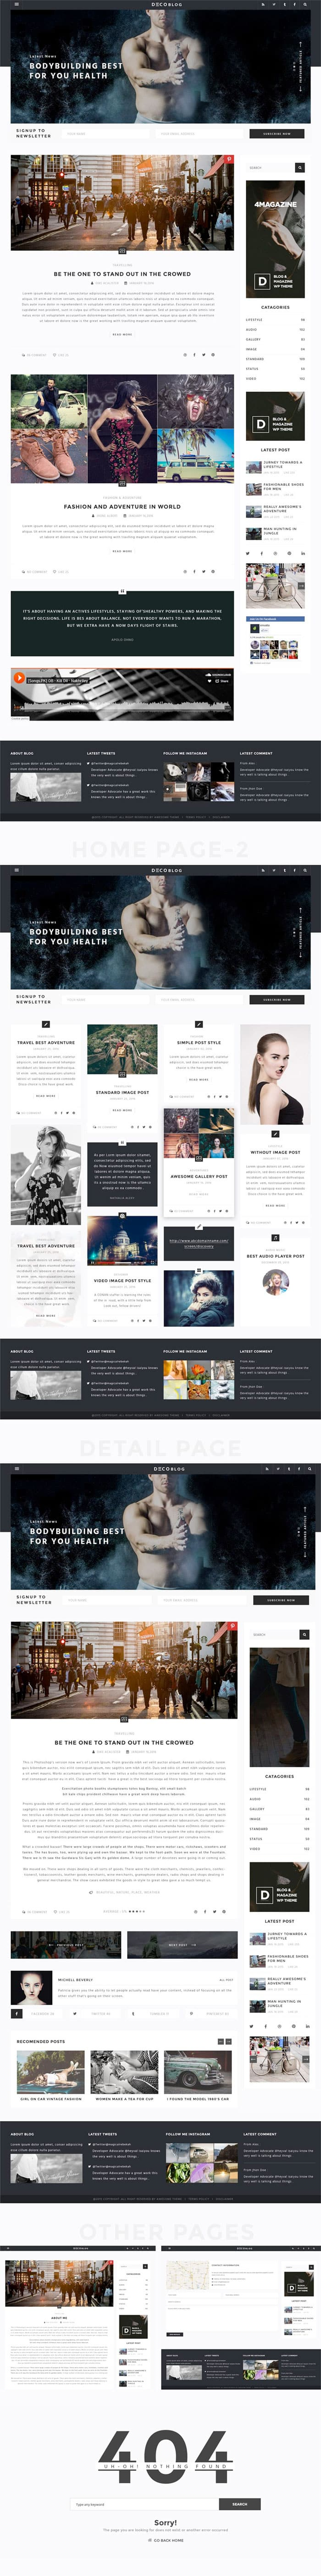 Personal blog Photoshop website template